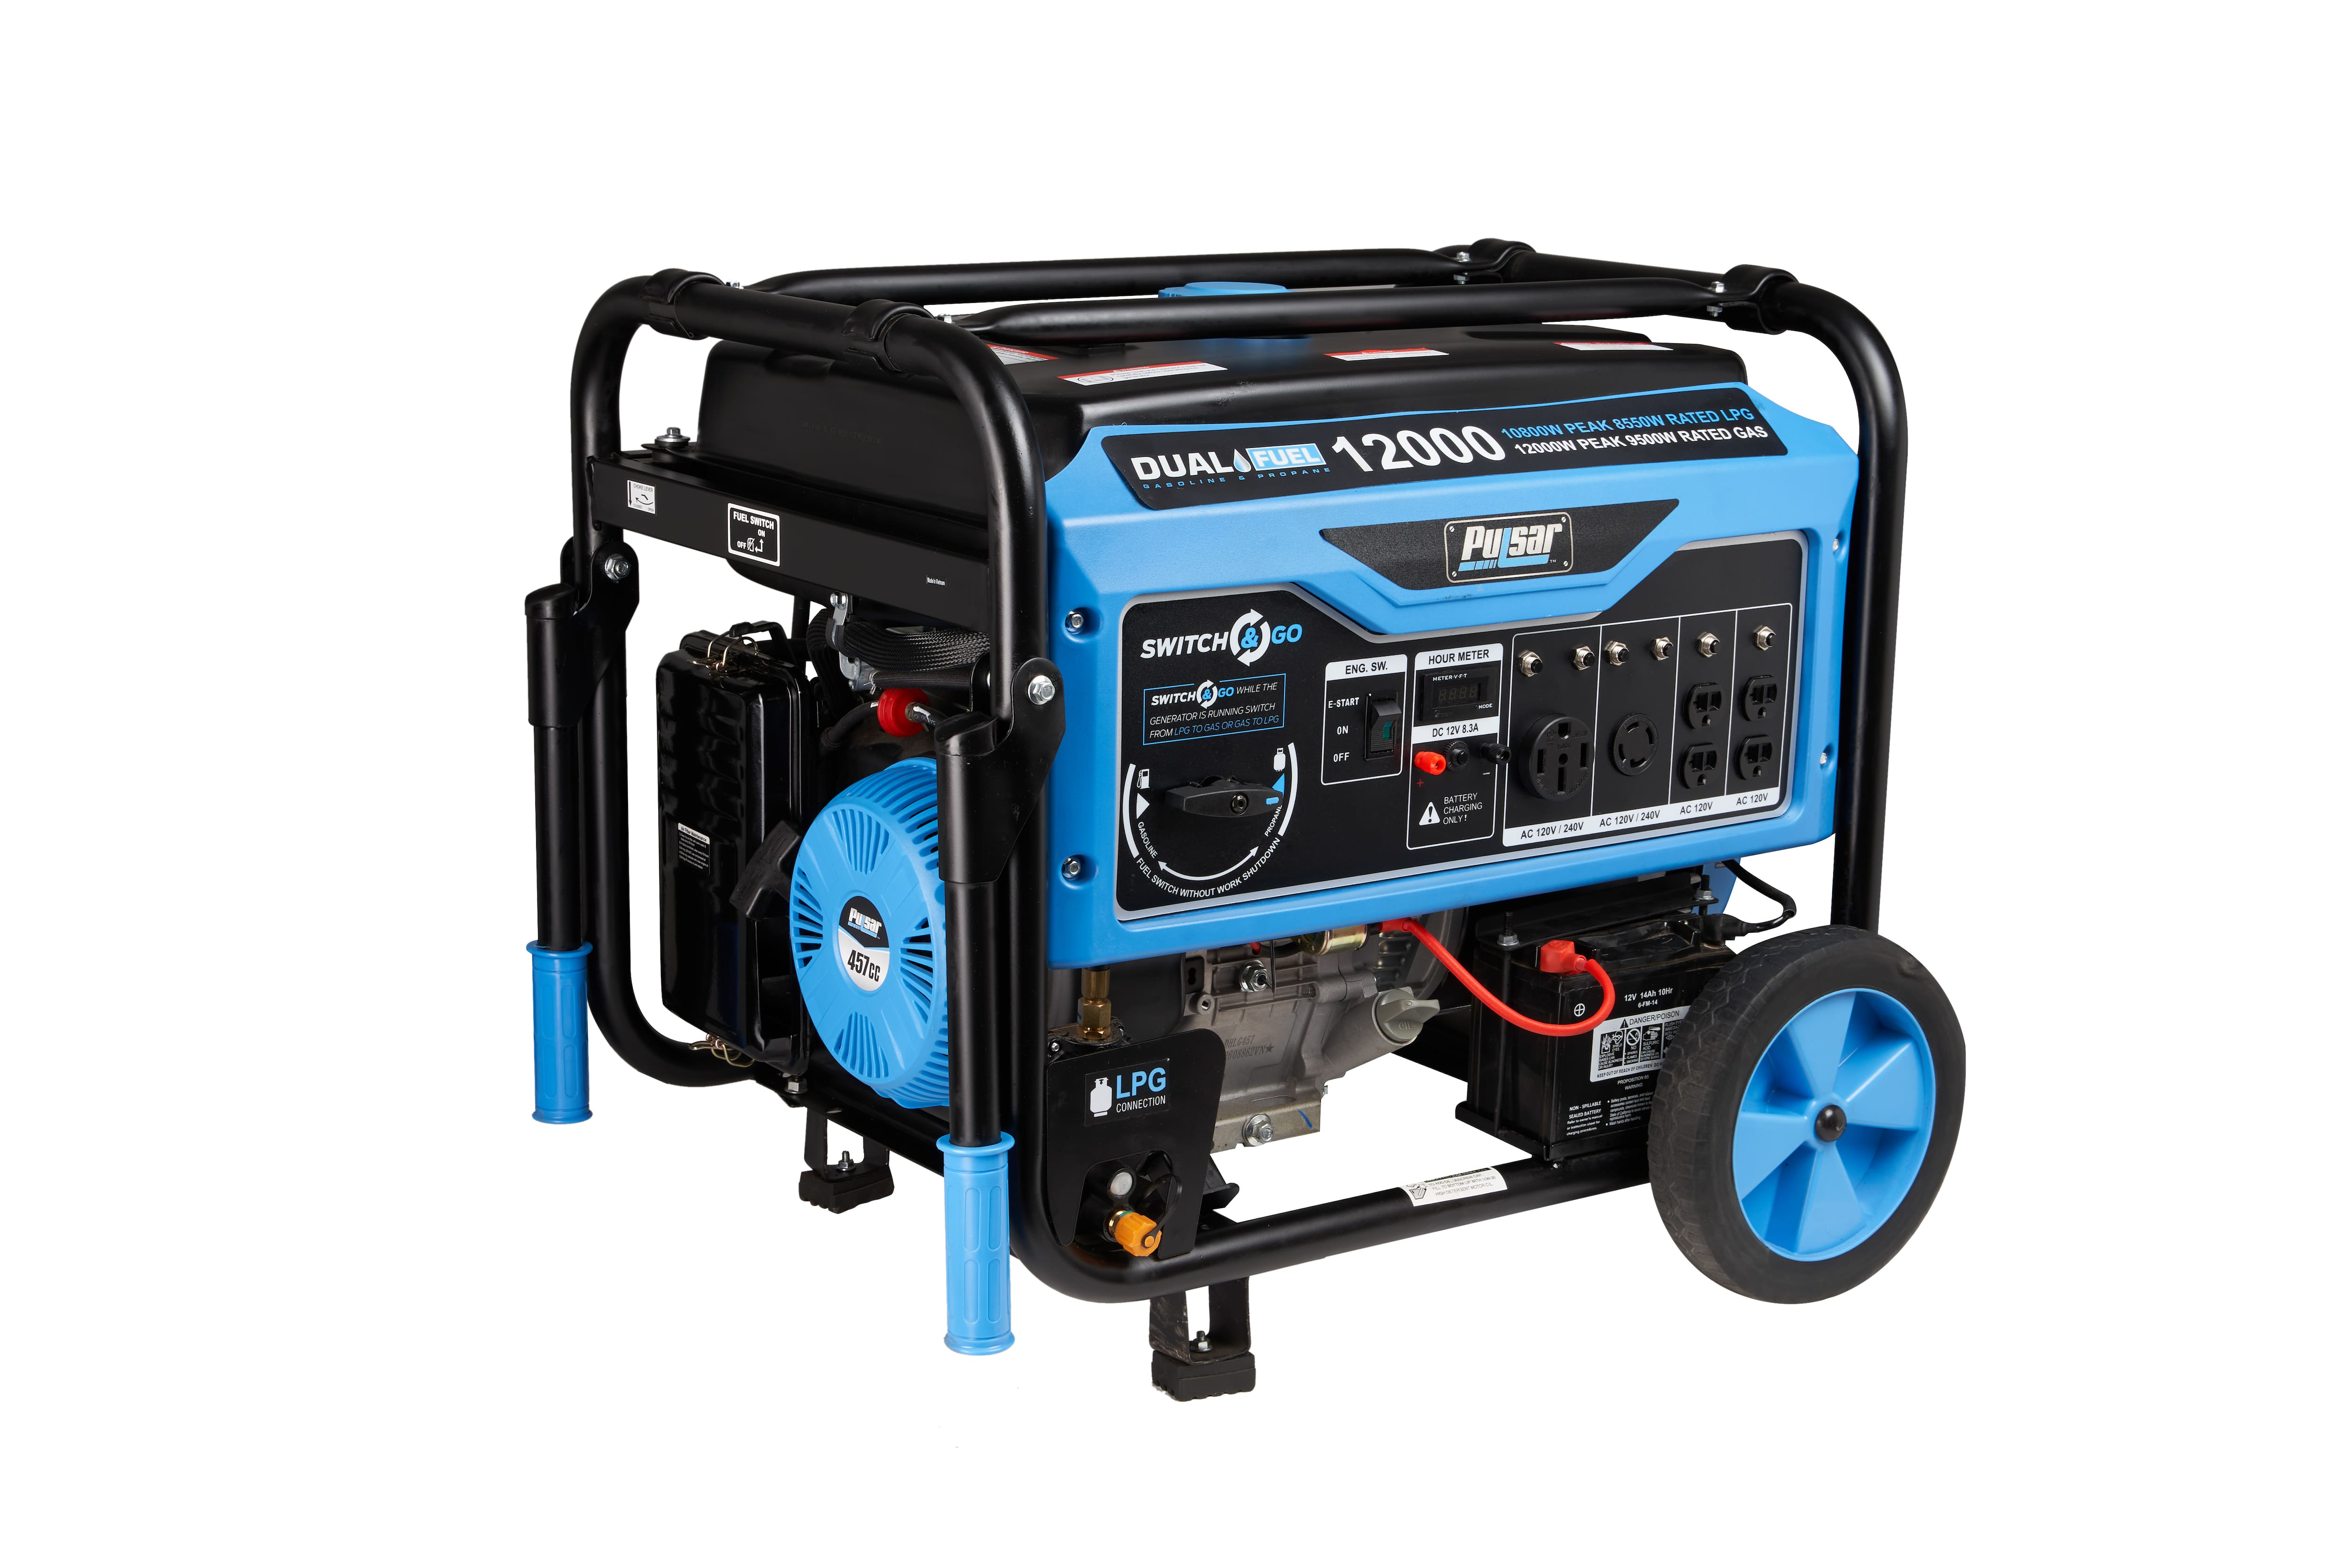 Pulsar's PG12000B - 12000W/9500W Dual Fuel Portable 457cc Generator with Electric Start and Switch & Go, CARB approved - $891.89 with FREE Shipping